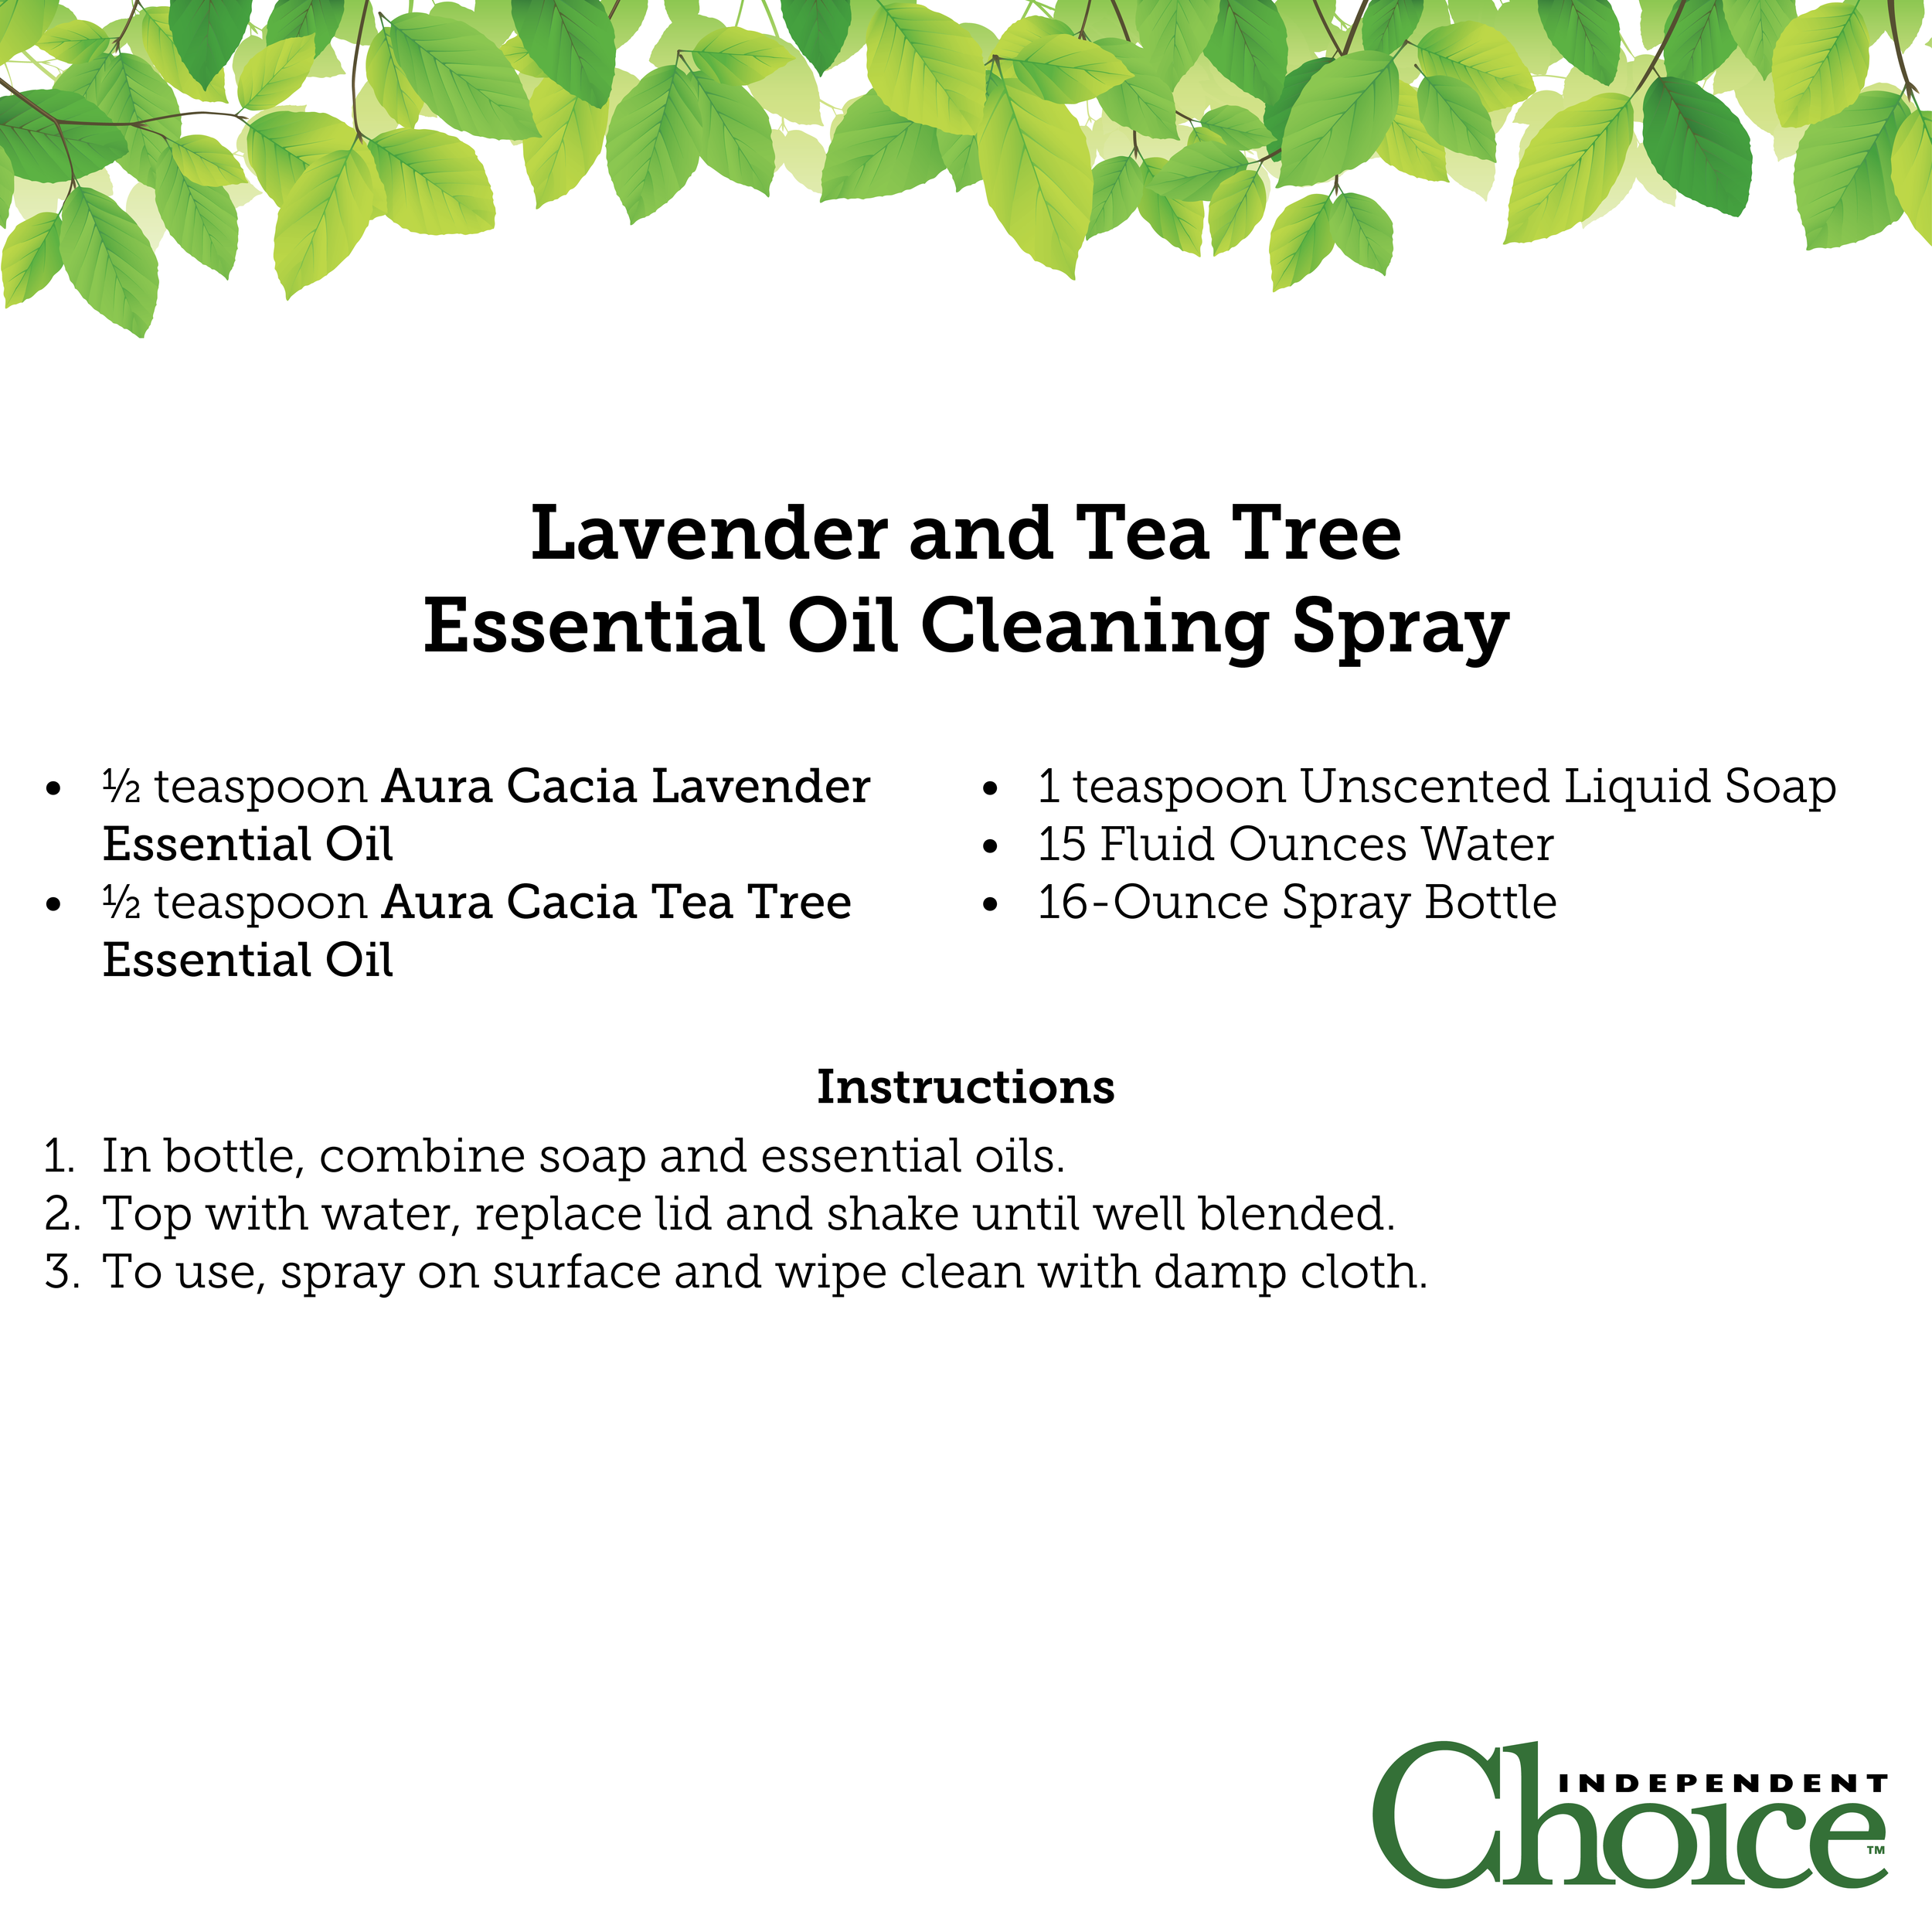 Lavender and Tea Tree Essential Oil Cleaning Spray.png